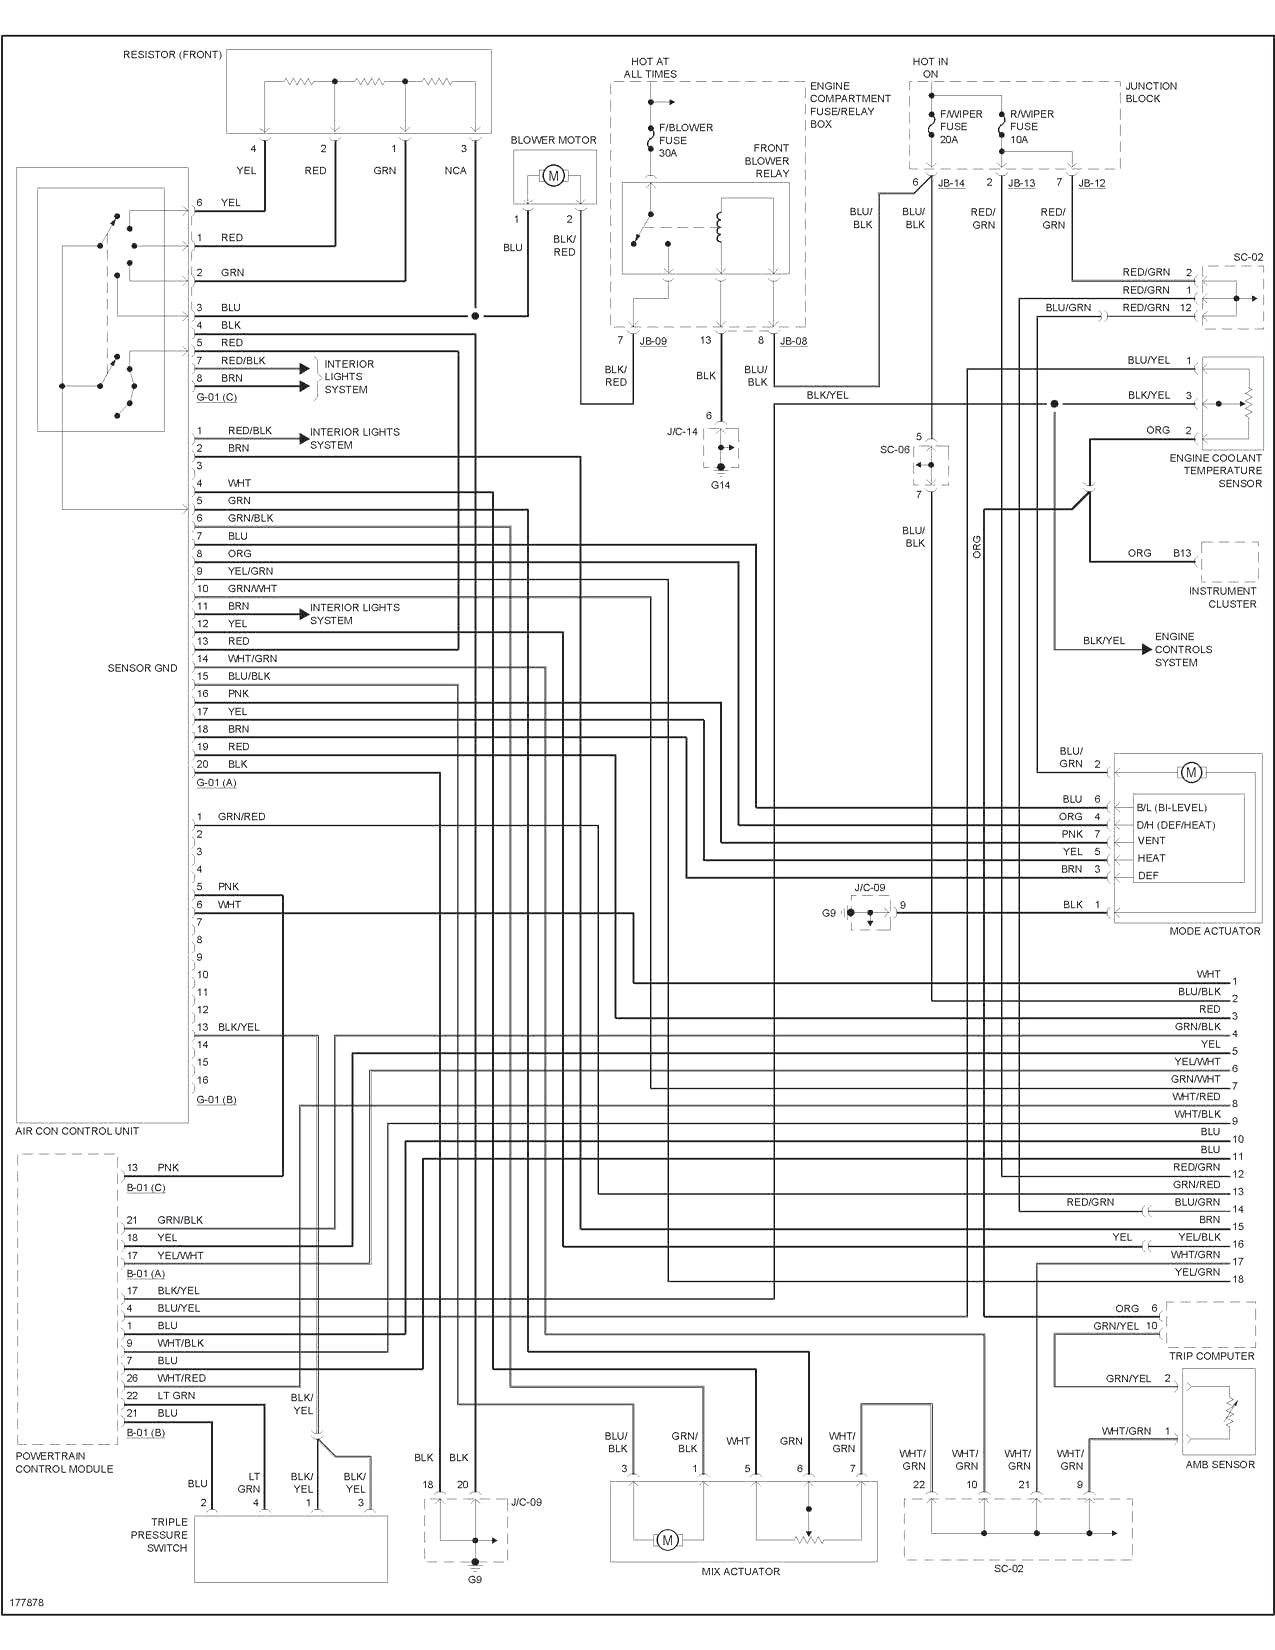 Awesome Kia Sorento Wiring Diagram Download In 2020 Kia Sorento Kia Picanto Sorento